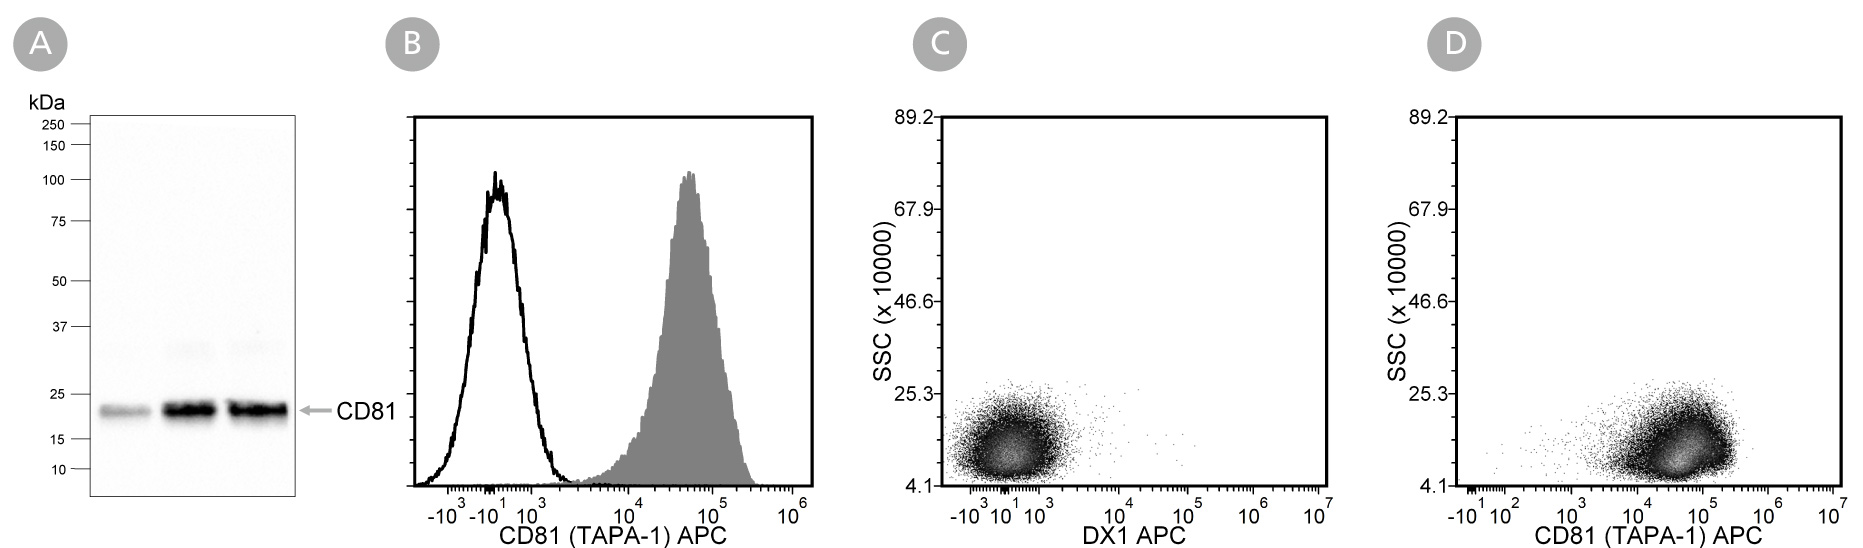 Data showing western blot analysis of extracellular vesicles isolated from mesenchymal stromal cell-conditioned medium with Anti-Human CD81 (TAPA-1) Antibody, Clone 5A6 and flow cytometry analysis of human peripheral blood mononuclear cells labeled with Anti-Human CD81 (TAPA-1) Antibody, Clone 5A6.